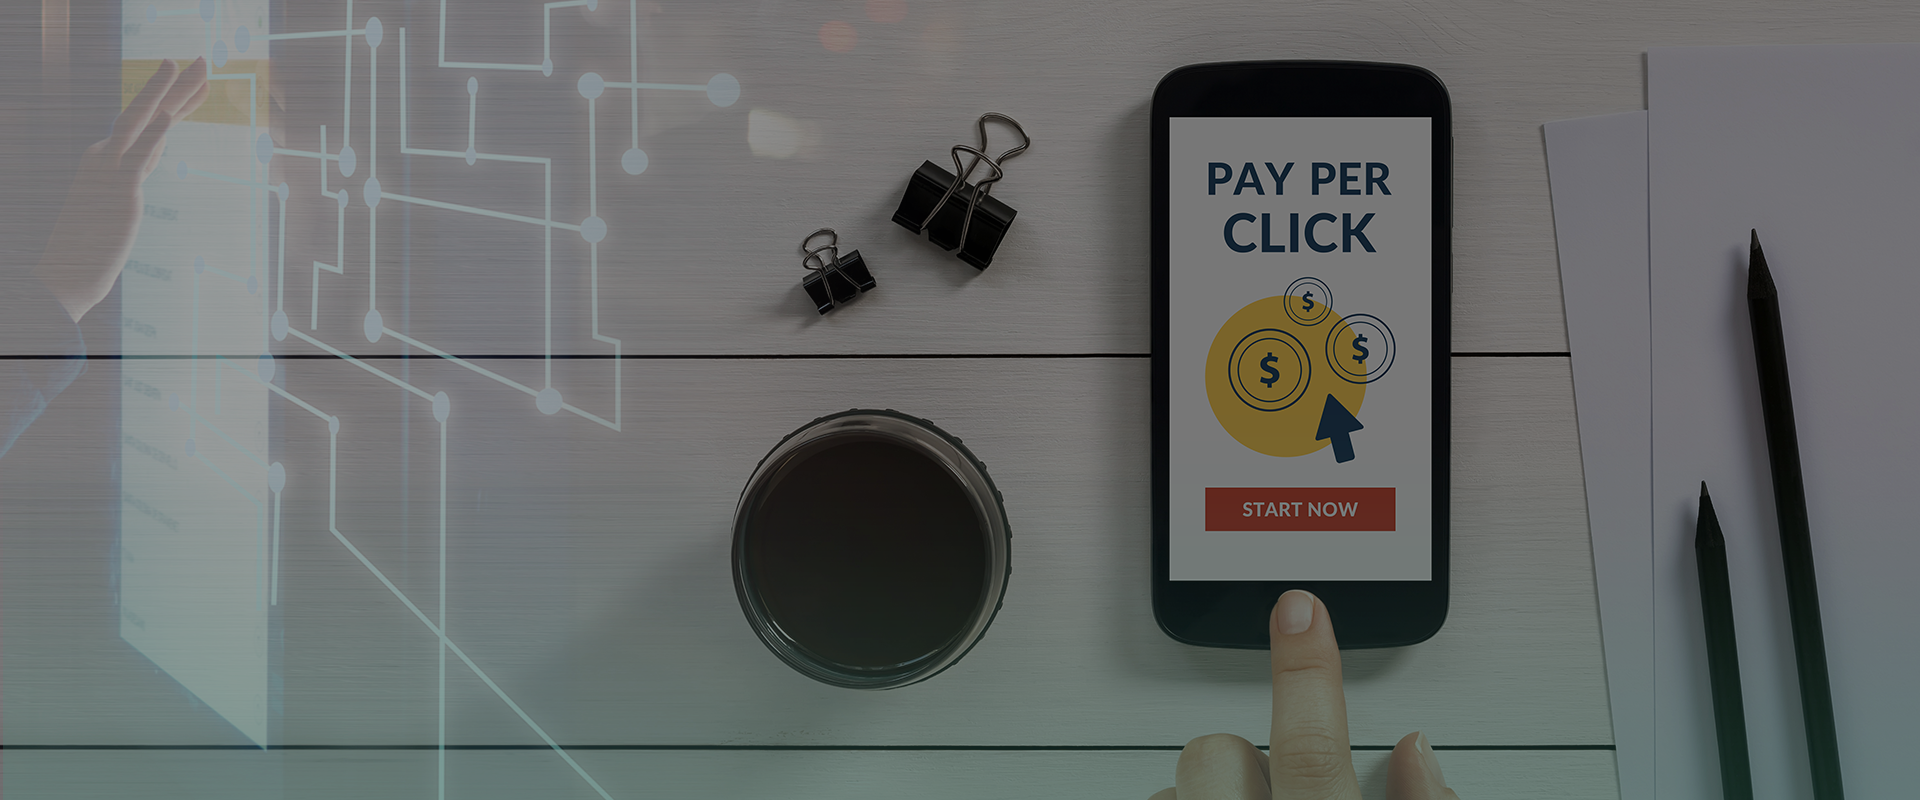 Pay Per Click Management Services